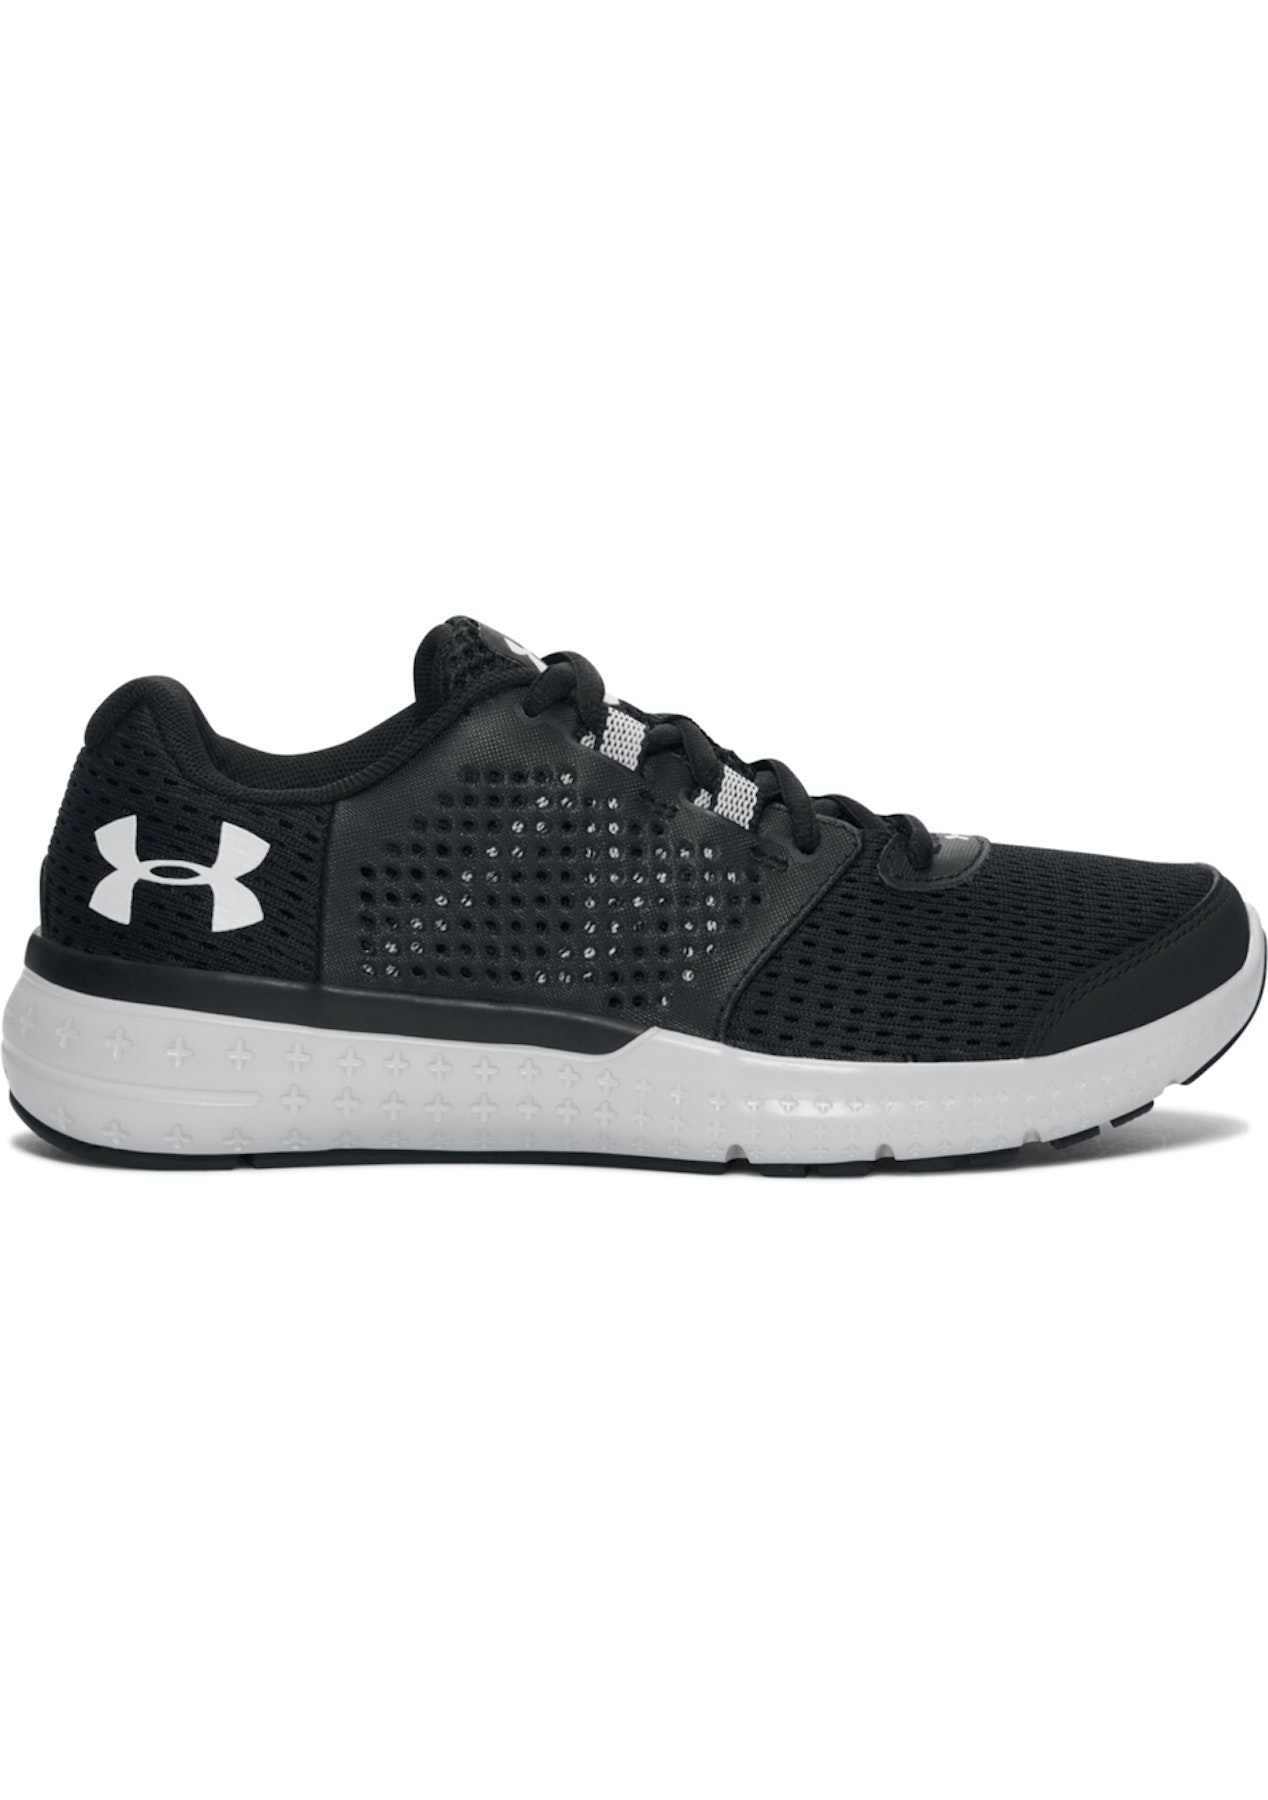 5b02157a05a Under Armour - Womens Micro G Fuel Rn Blk Glacgry - Onceit s Gone it s Gone  Outlet - Onceit